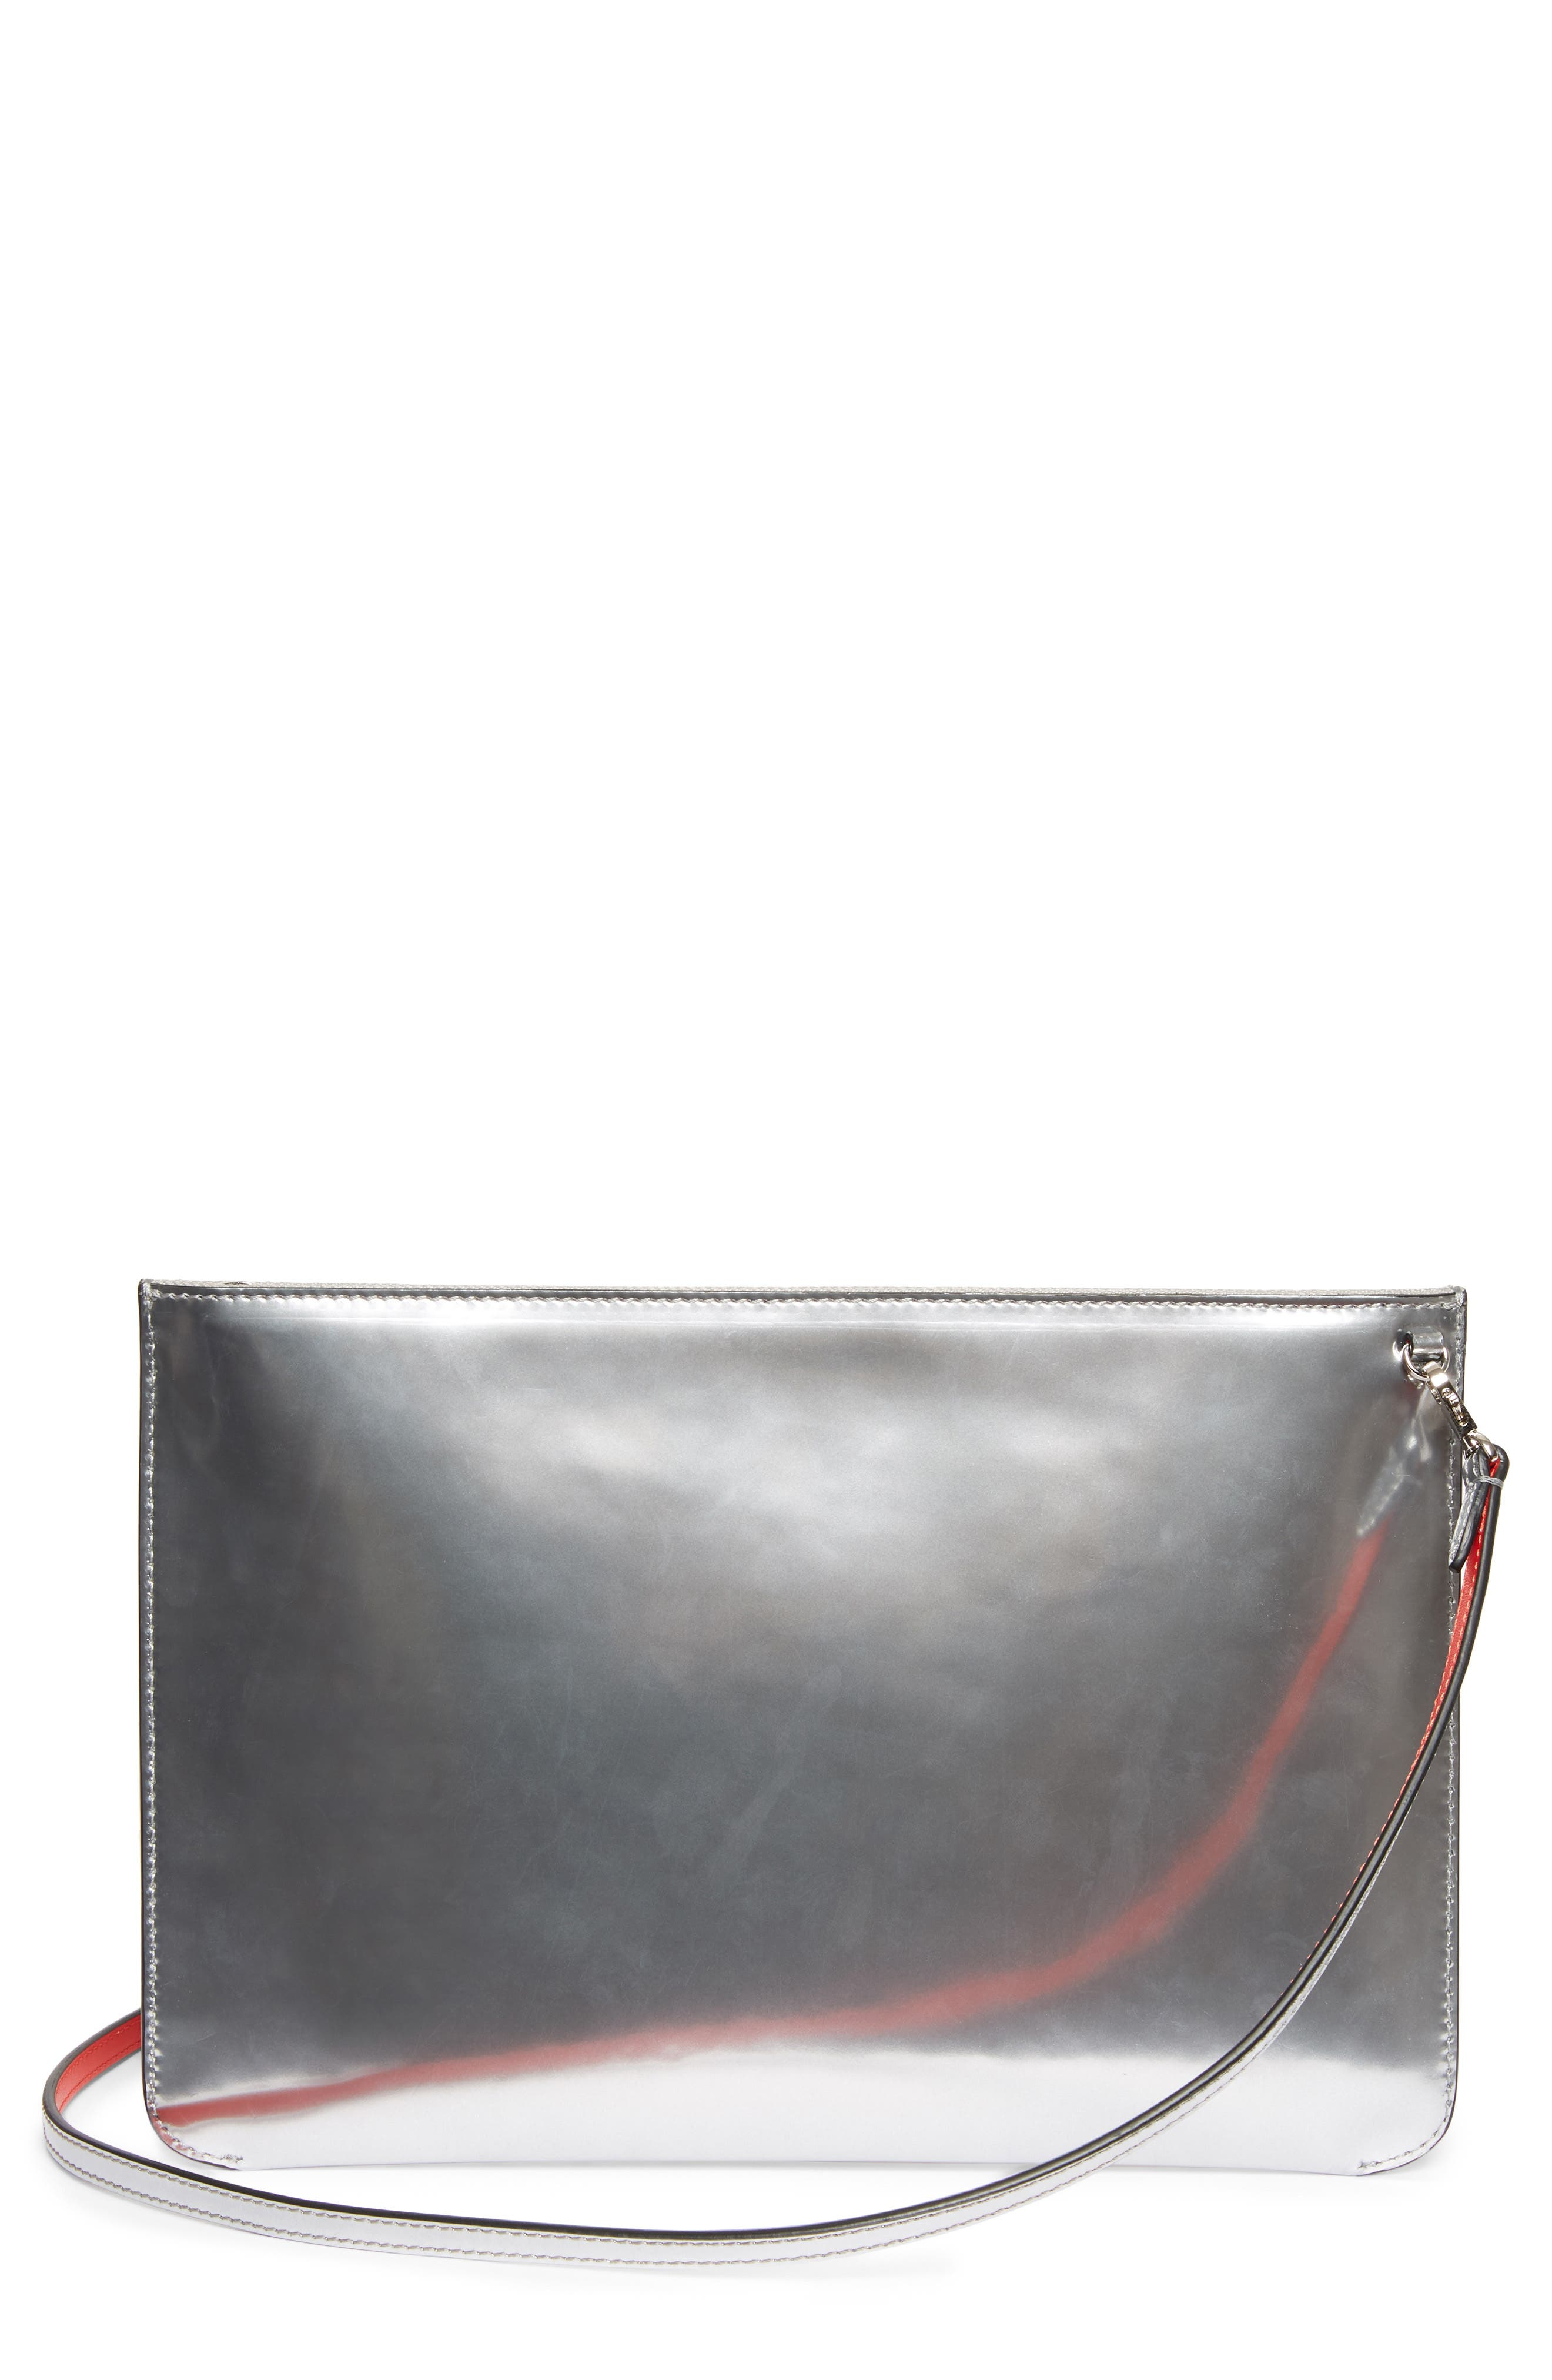 Loubiclutch Spiked Leather Clutch,                             Alternate thumbnail 2, color,                             Silver/ Silver